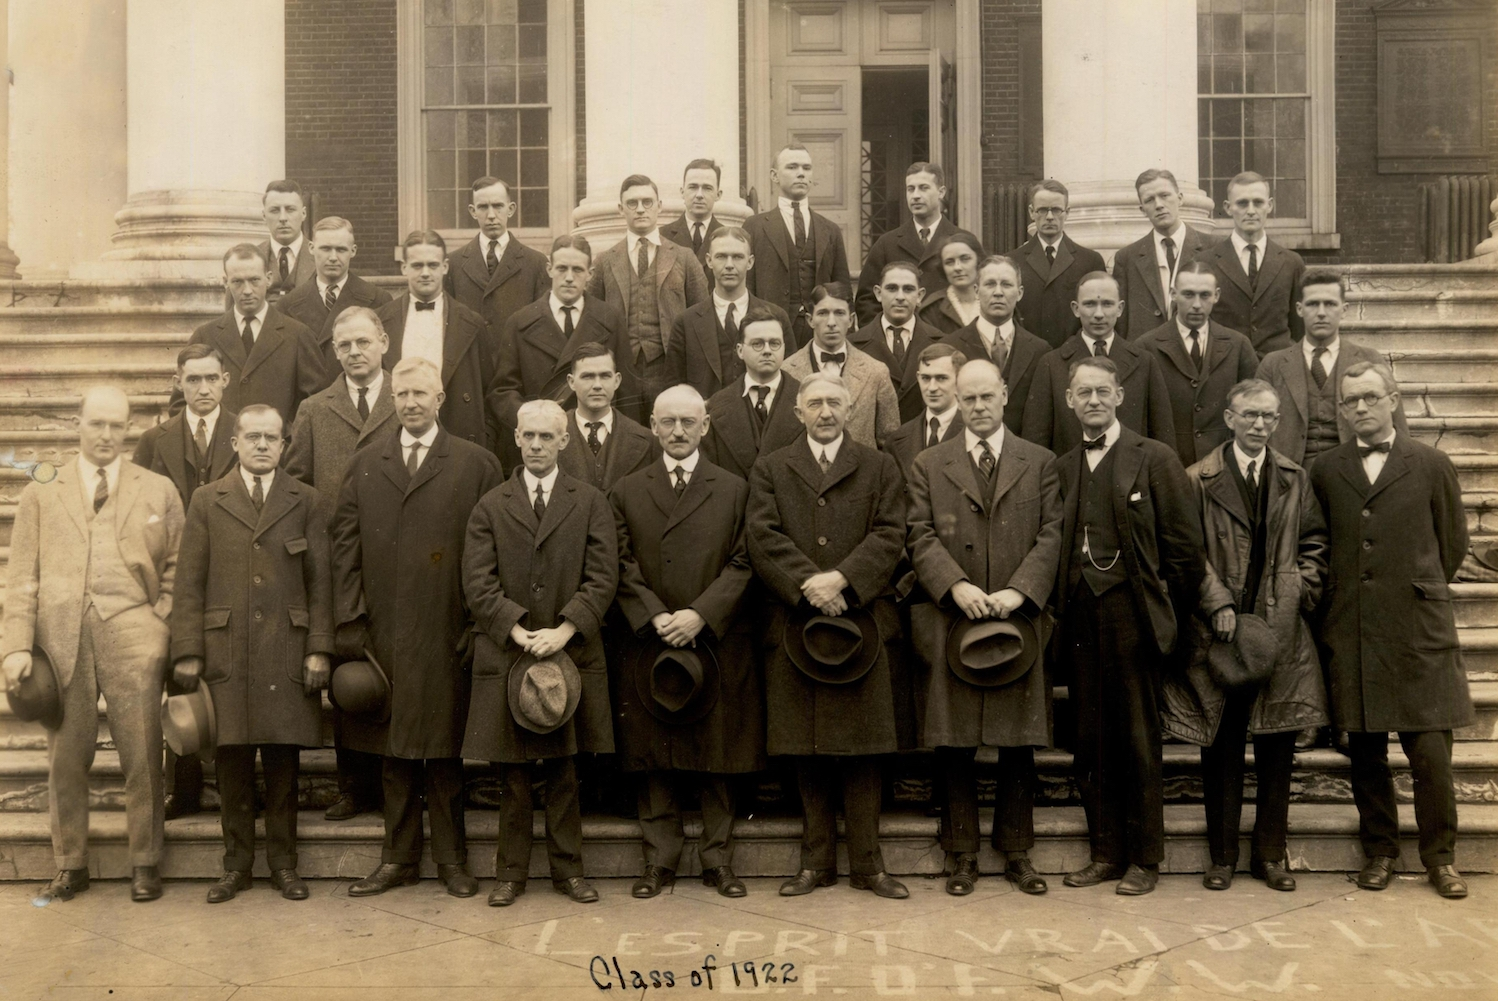 Members of the faculty with the School of Medicine class of 1922, featuring Sara Ruth Dean in the second row from the top. Prints21251, Historical Collections & Services, Claude Moore Health Sciences Library.